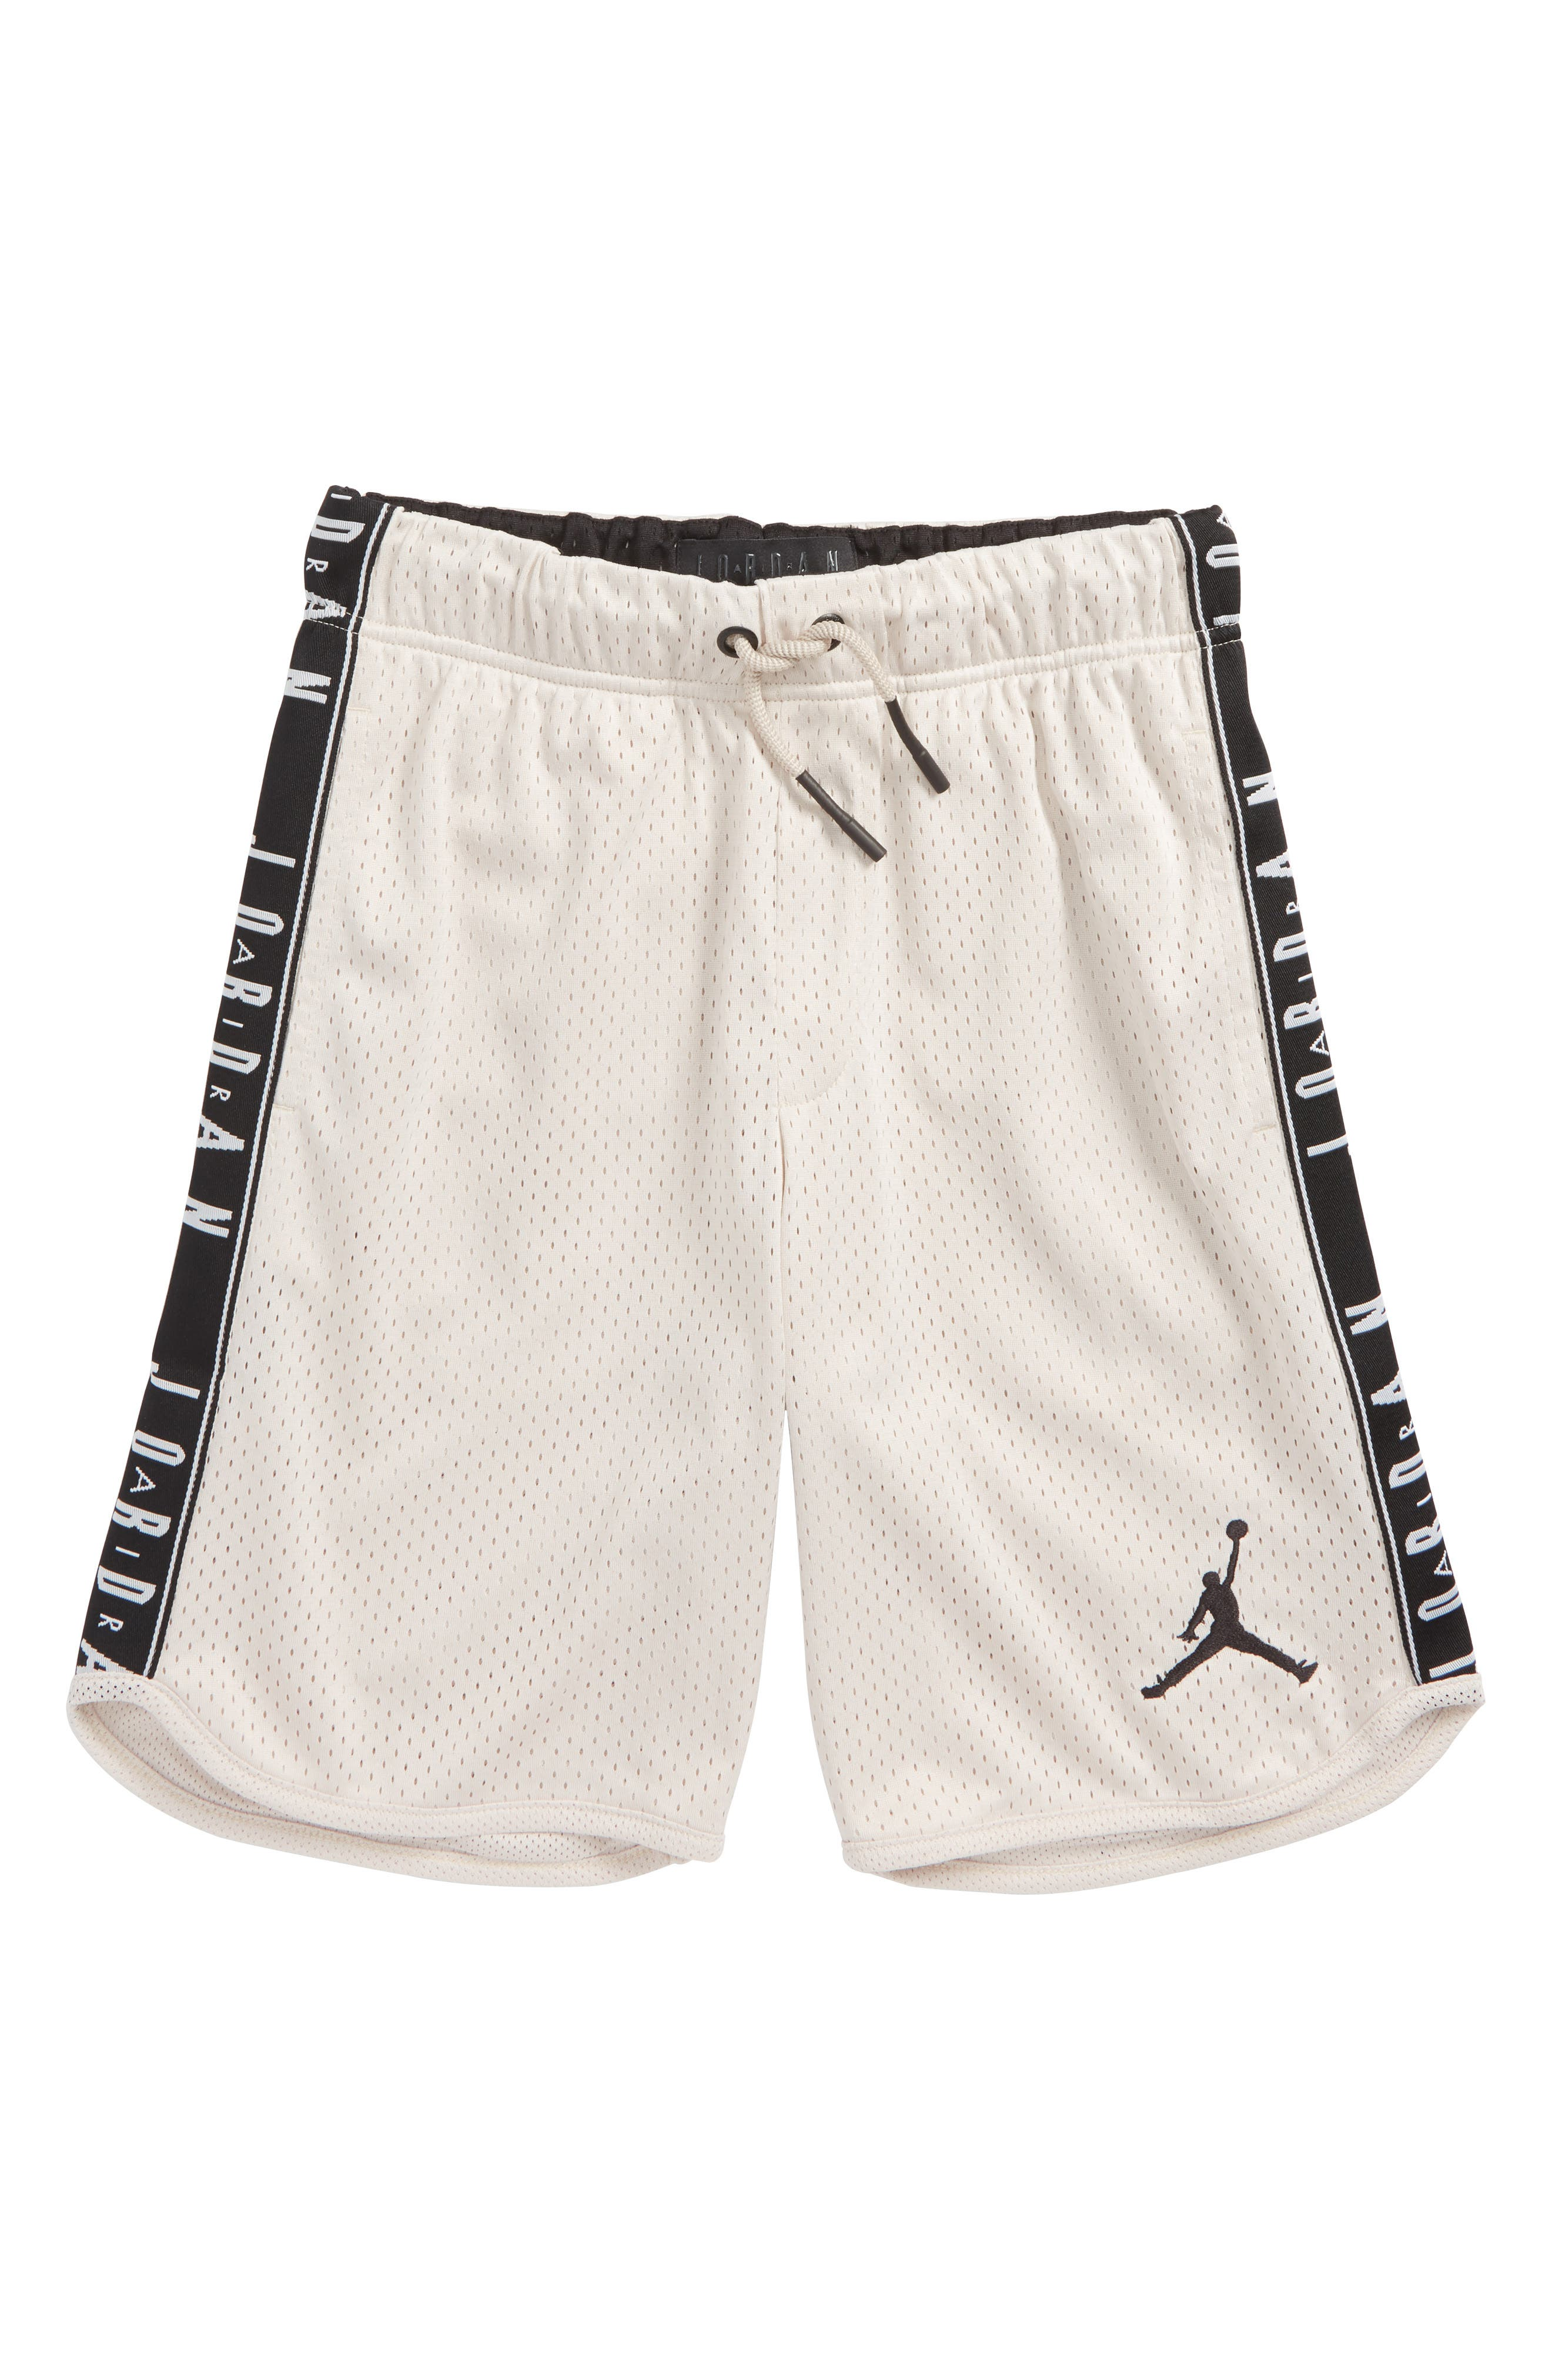 Jordan Rise Graphic Tape Baller Short,                             Main thumbnail 1, color,                             Desert Sand